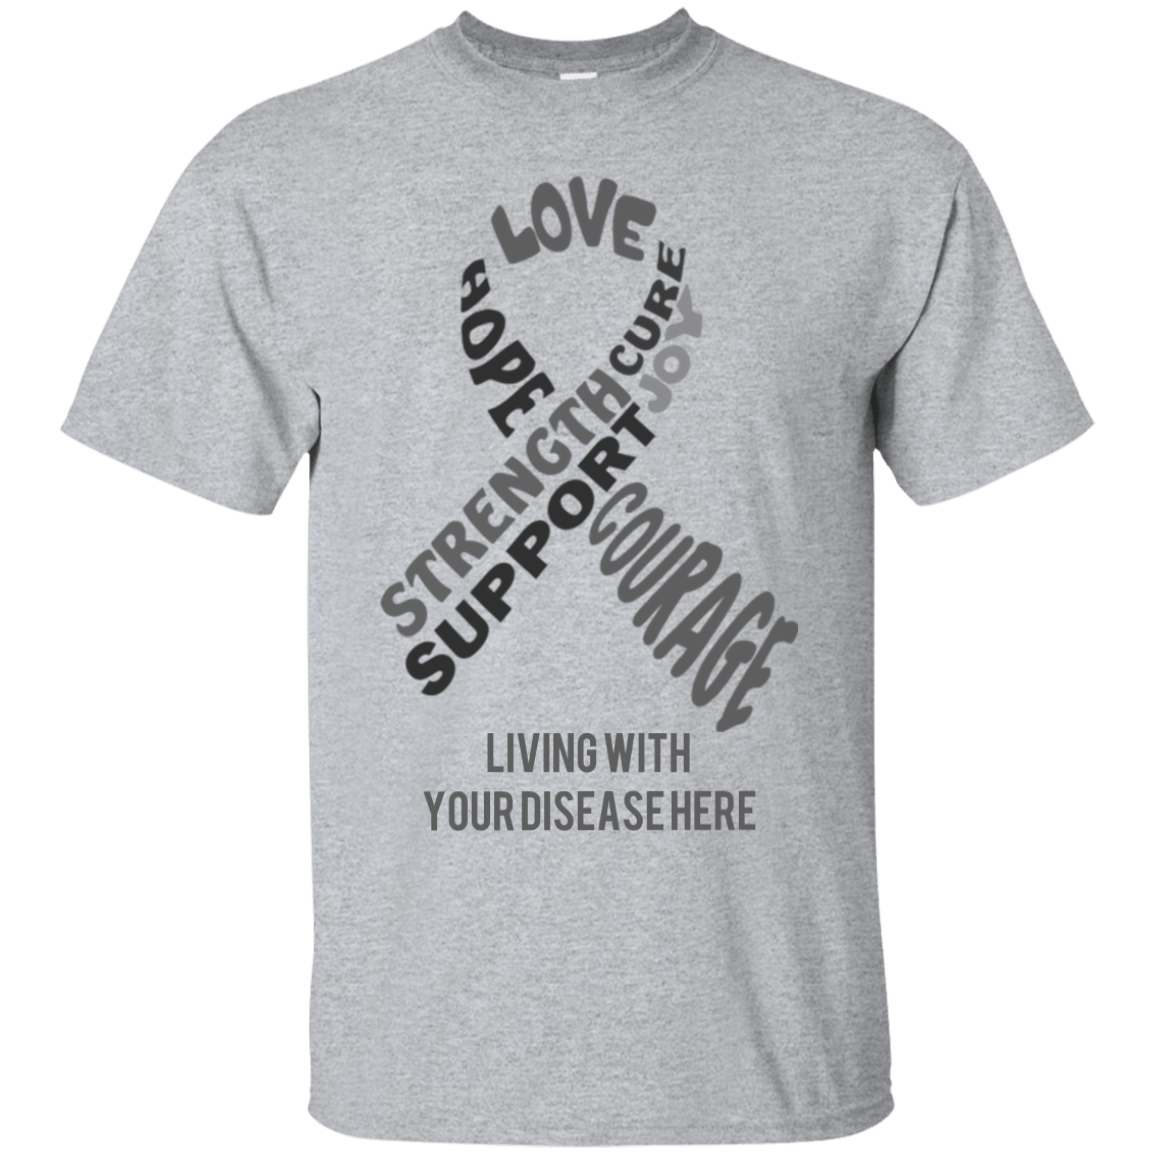 Customisable Grey Awareness Ribbon With Words Unisex Shirt - The Unchargeables